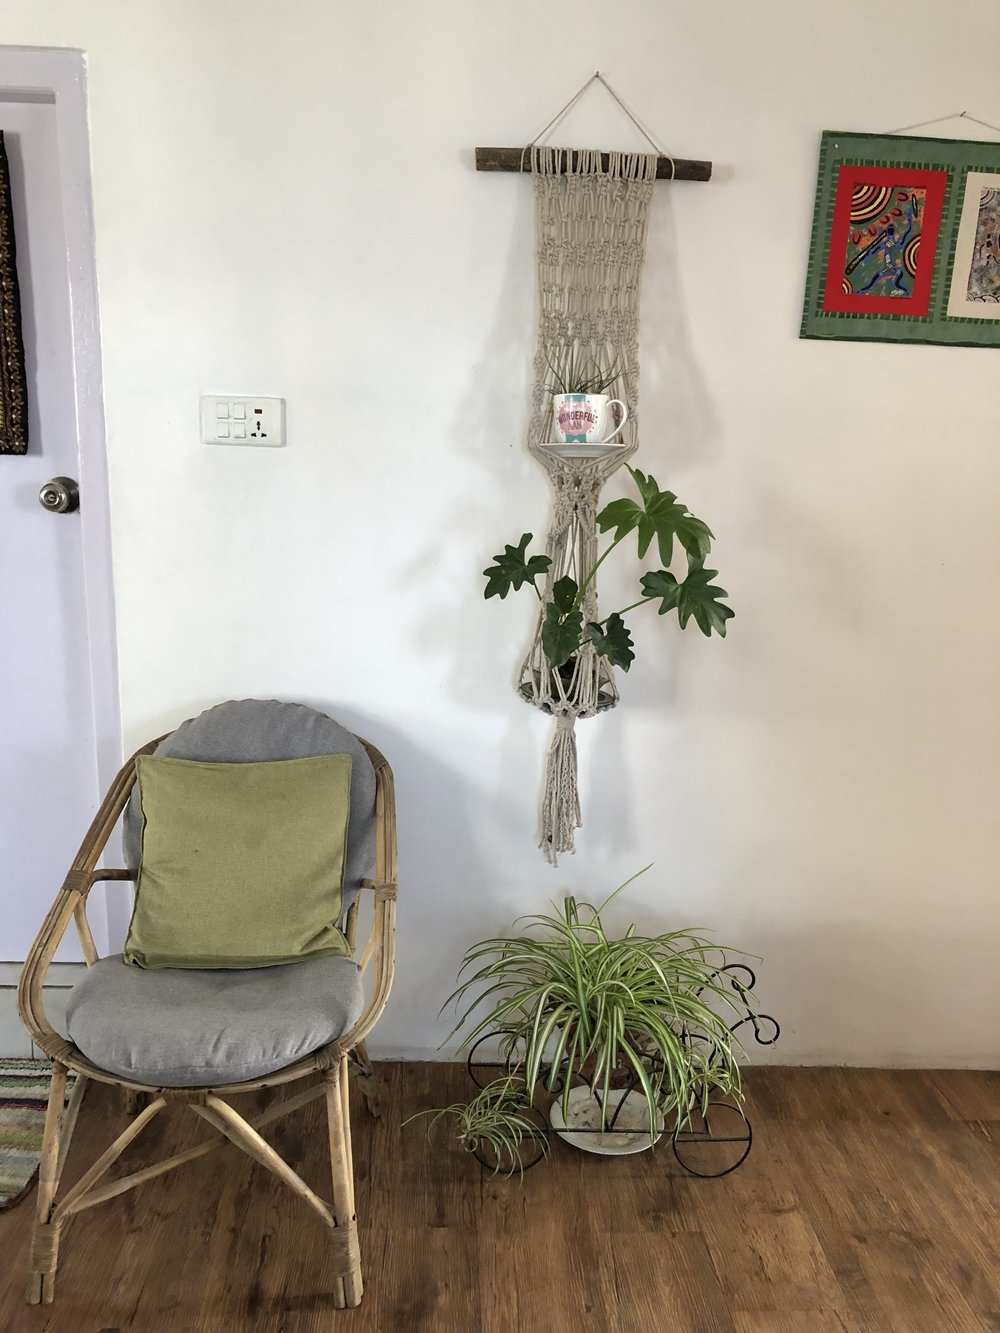 Spider plants on the floor with a Monstera hanging above it accompanied by a rootless air plant in the coffee mug.